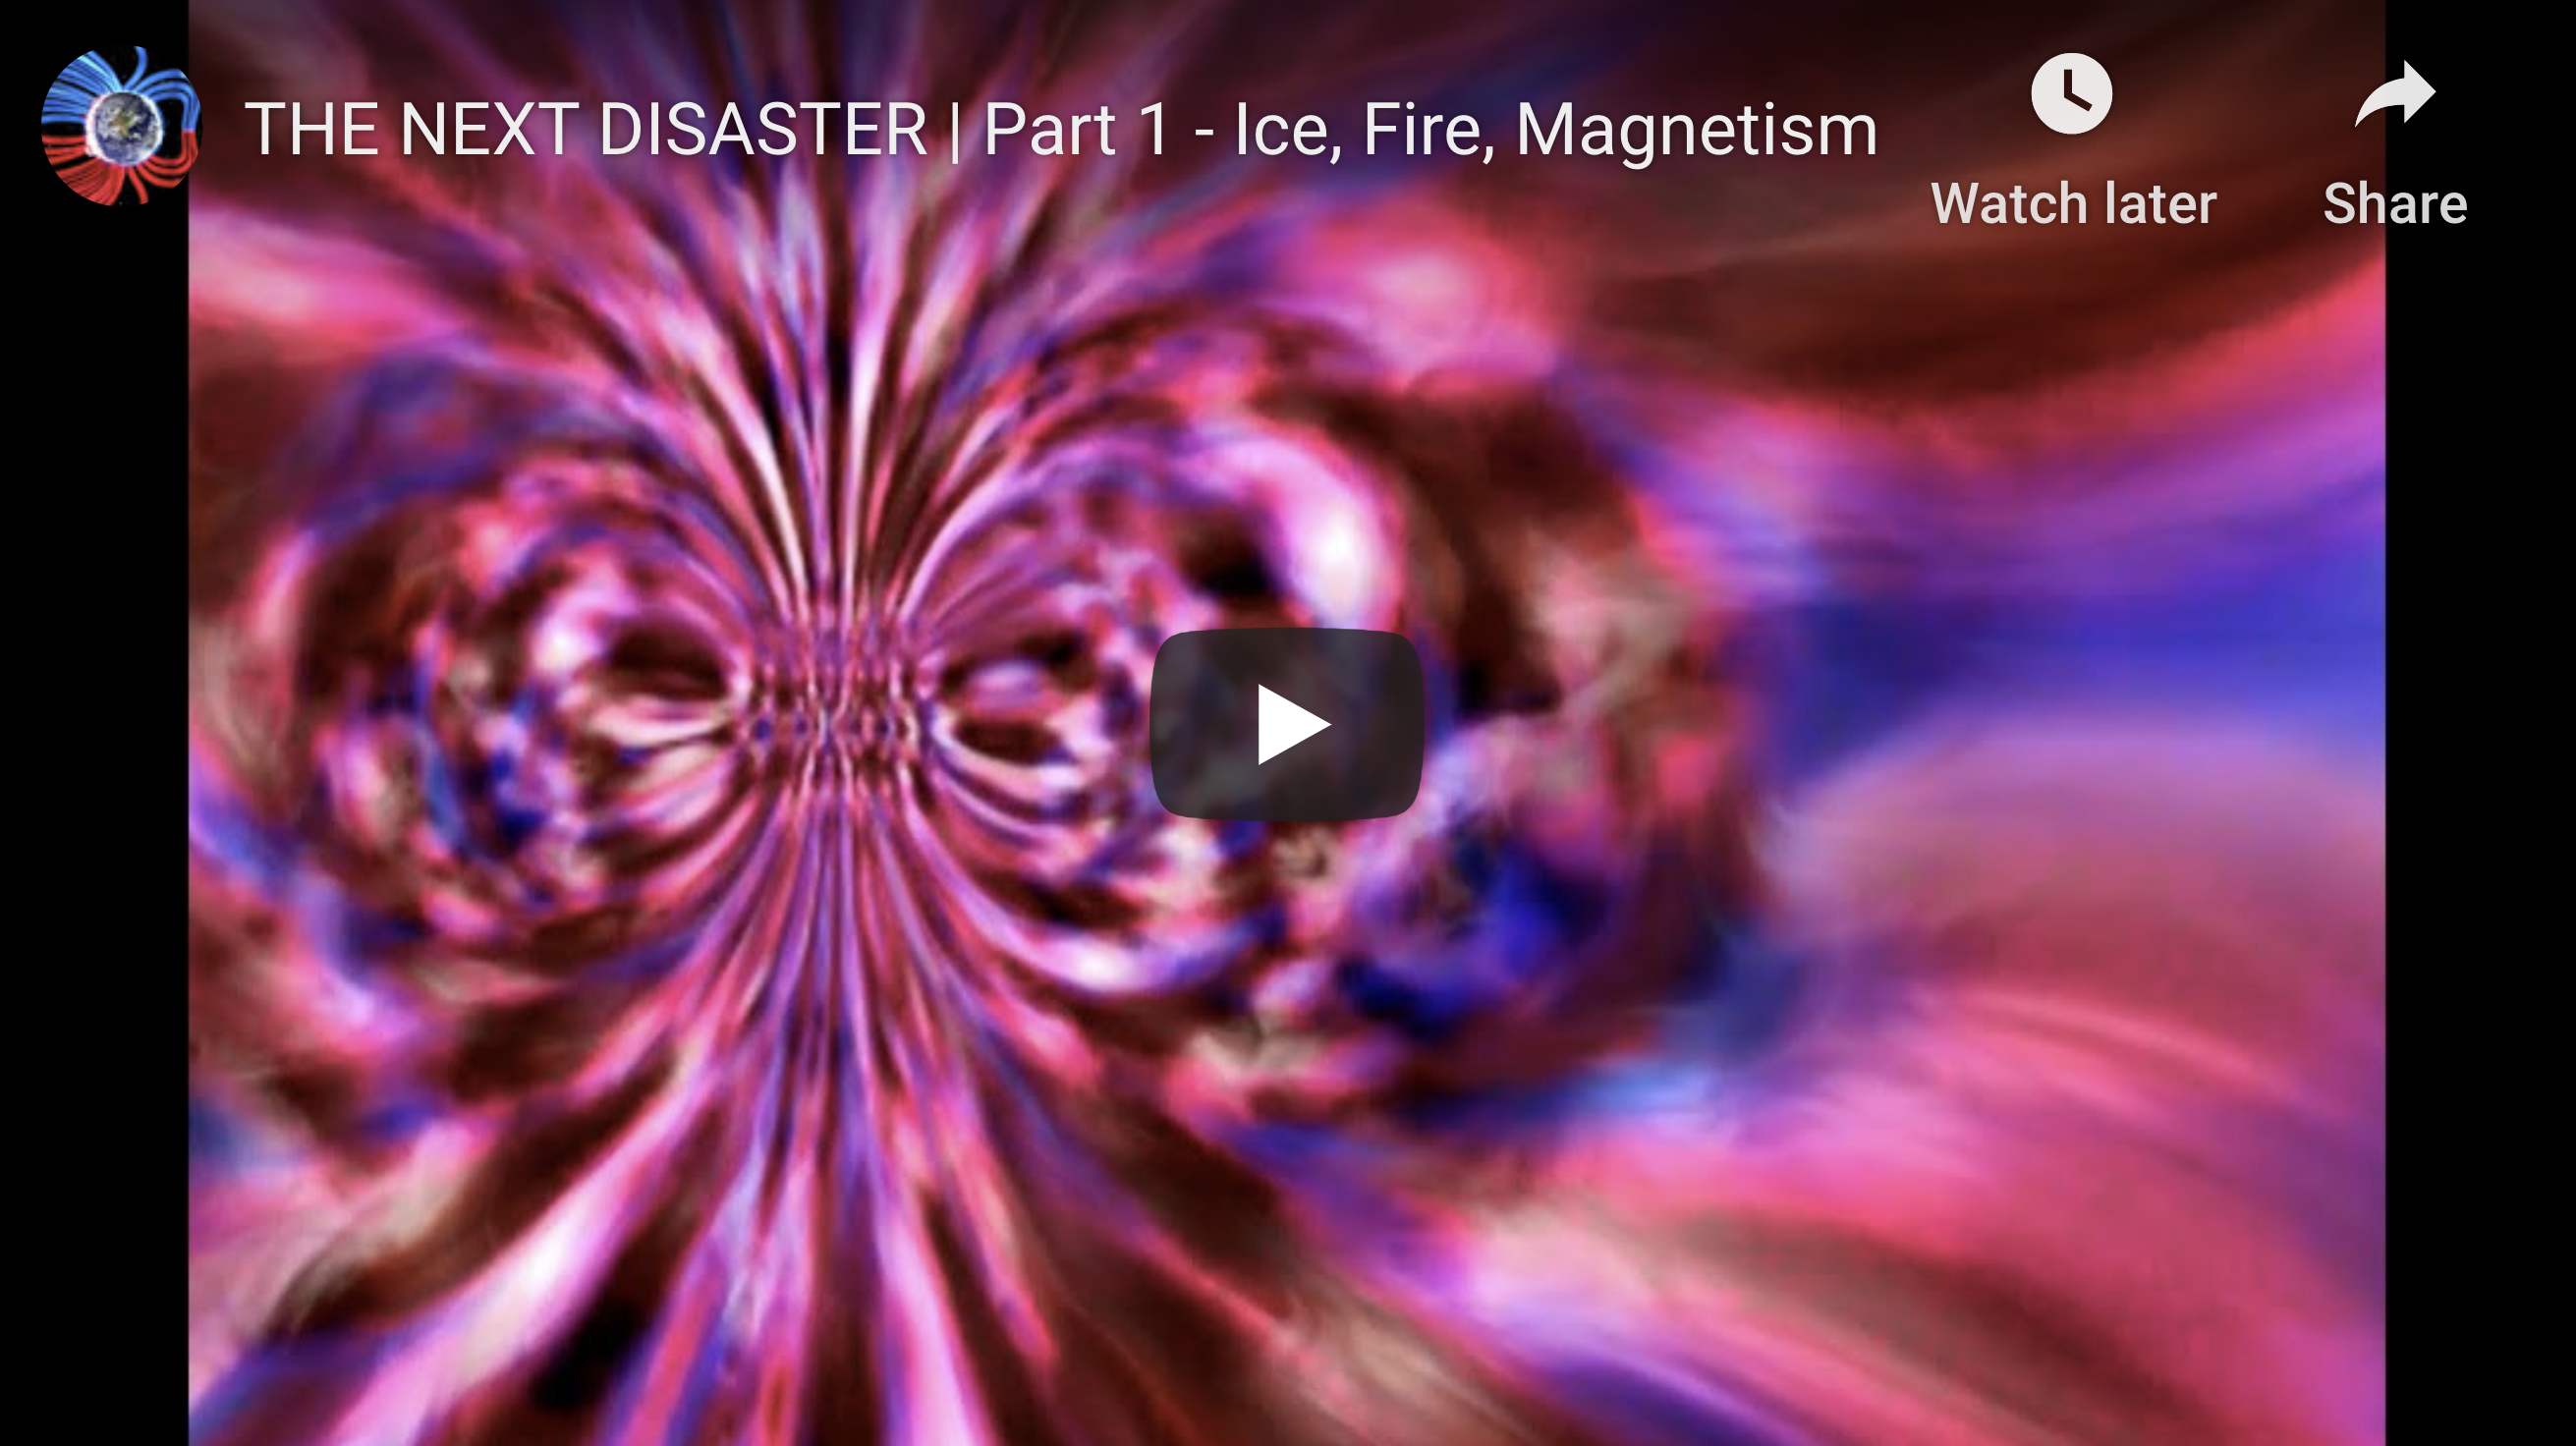 Suspicious Observers Post THE NEXT DISASTER Part 1 Ice, Fire, Magnetism EXZM Zack Mount December 25th 2020